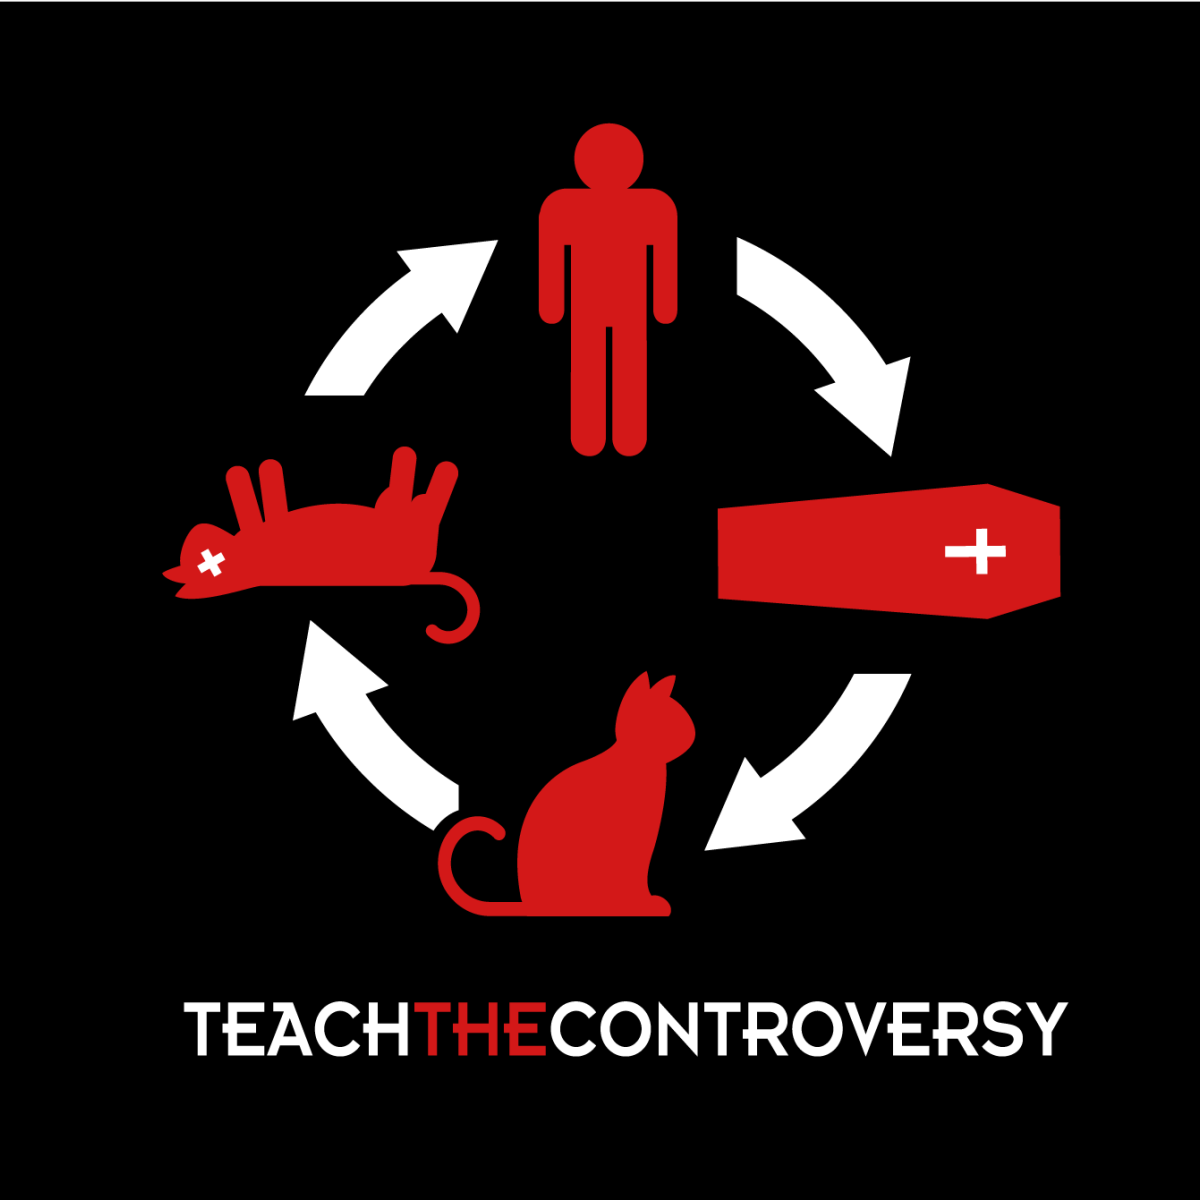 Reincarnation Shirt From Teach The Controversy